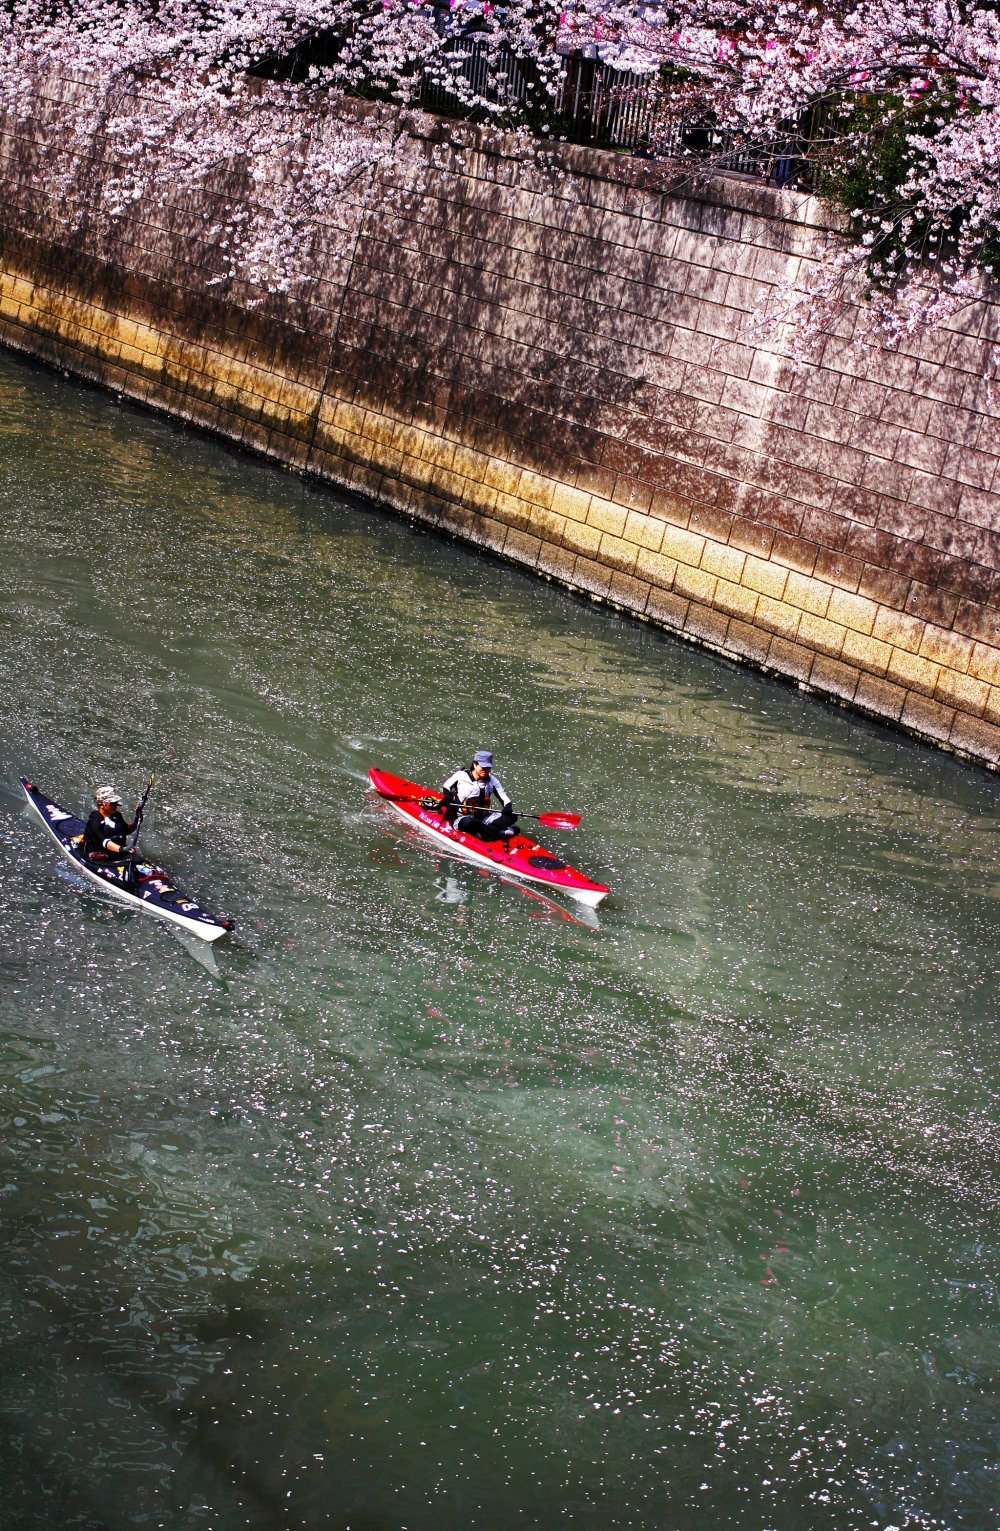 There were quite a few people taking advantage of the calm water, warm weather and beautiful scenery by having a short kayak ride along the river. It was also nice to see the first petals floating on the water—a perfect day for kayaking.